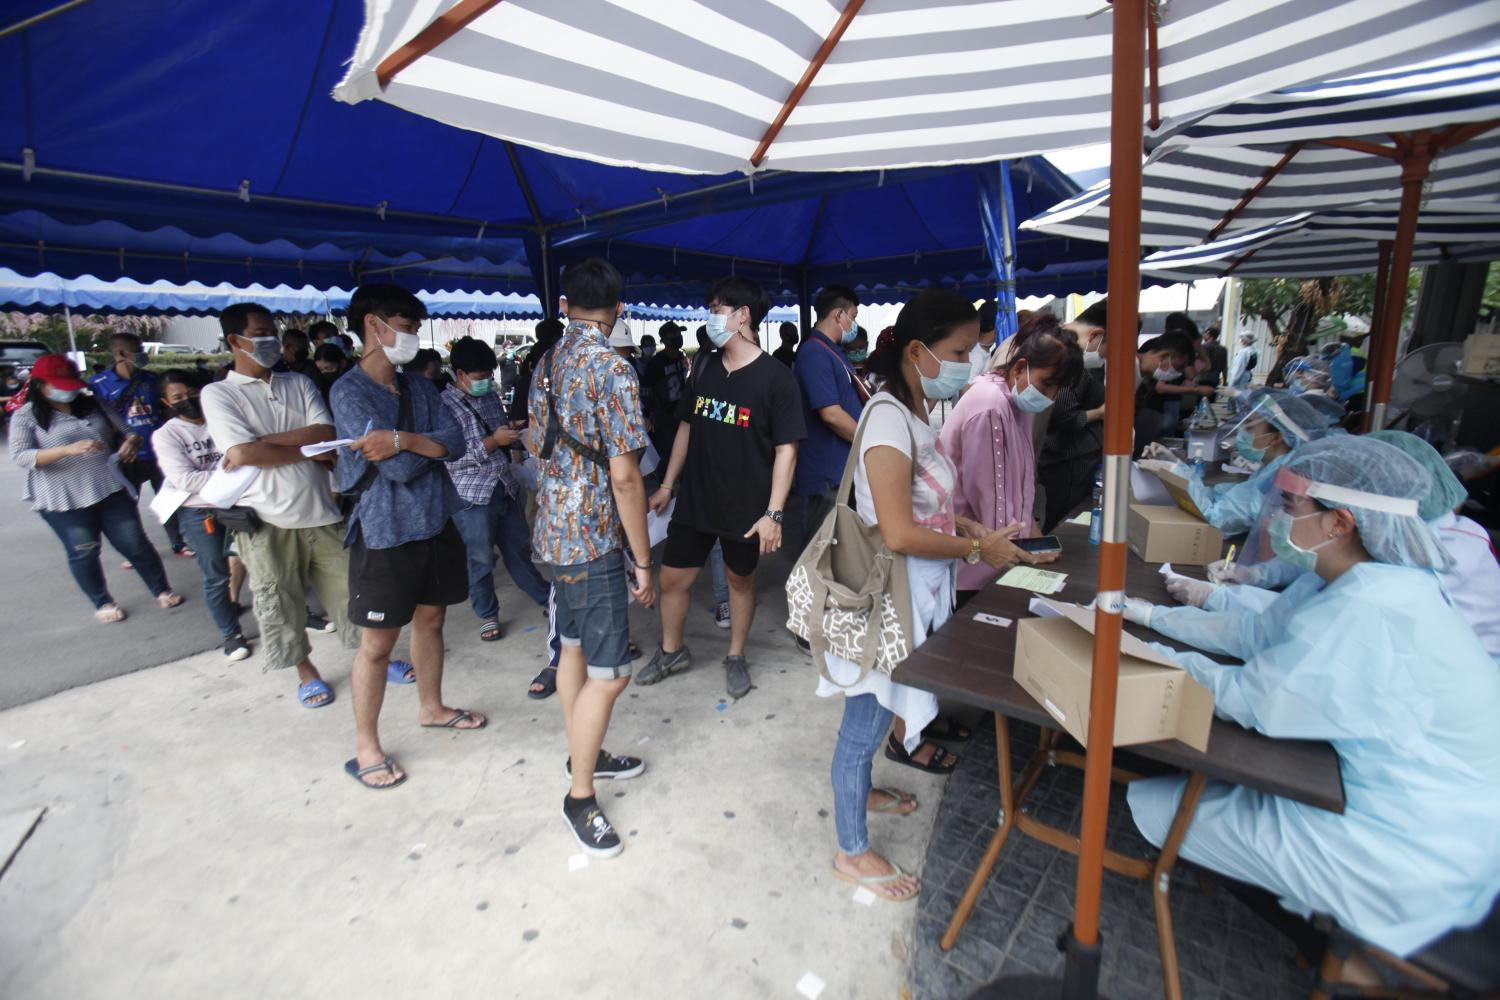 Thong Lor residents queue up for Covid-19 tests after the area is declared as a virus epicentre. Nutthawat Wicheanbut